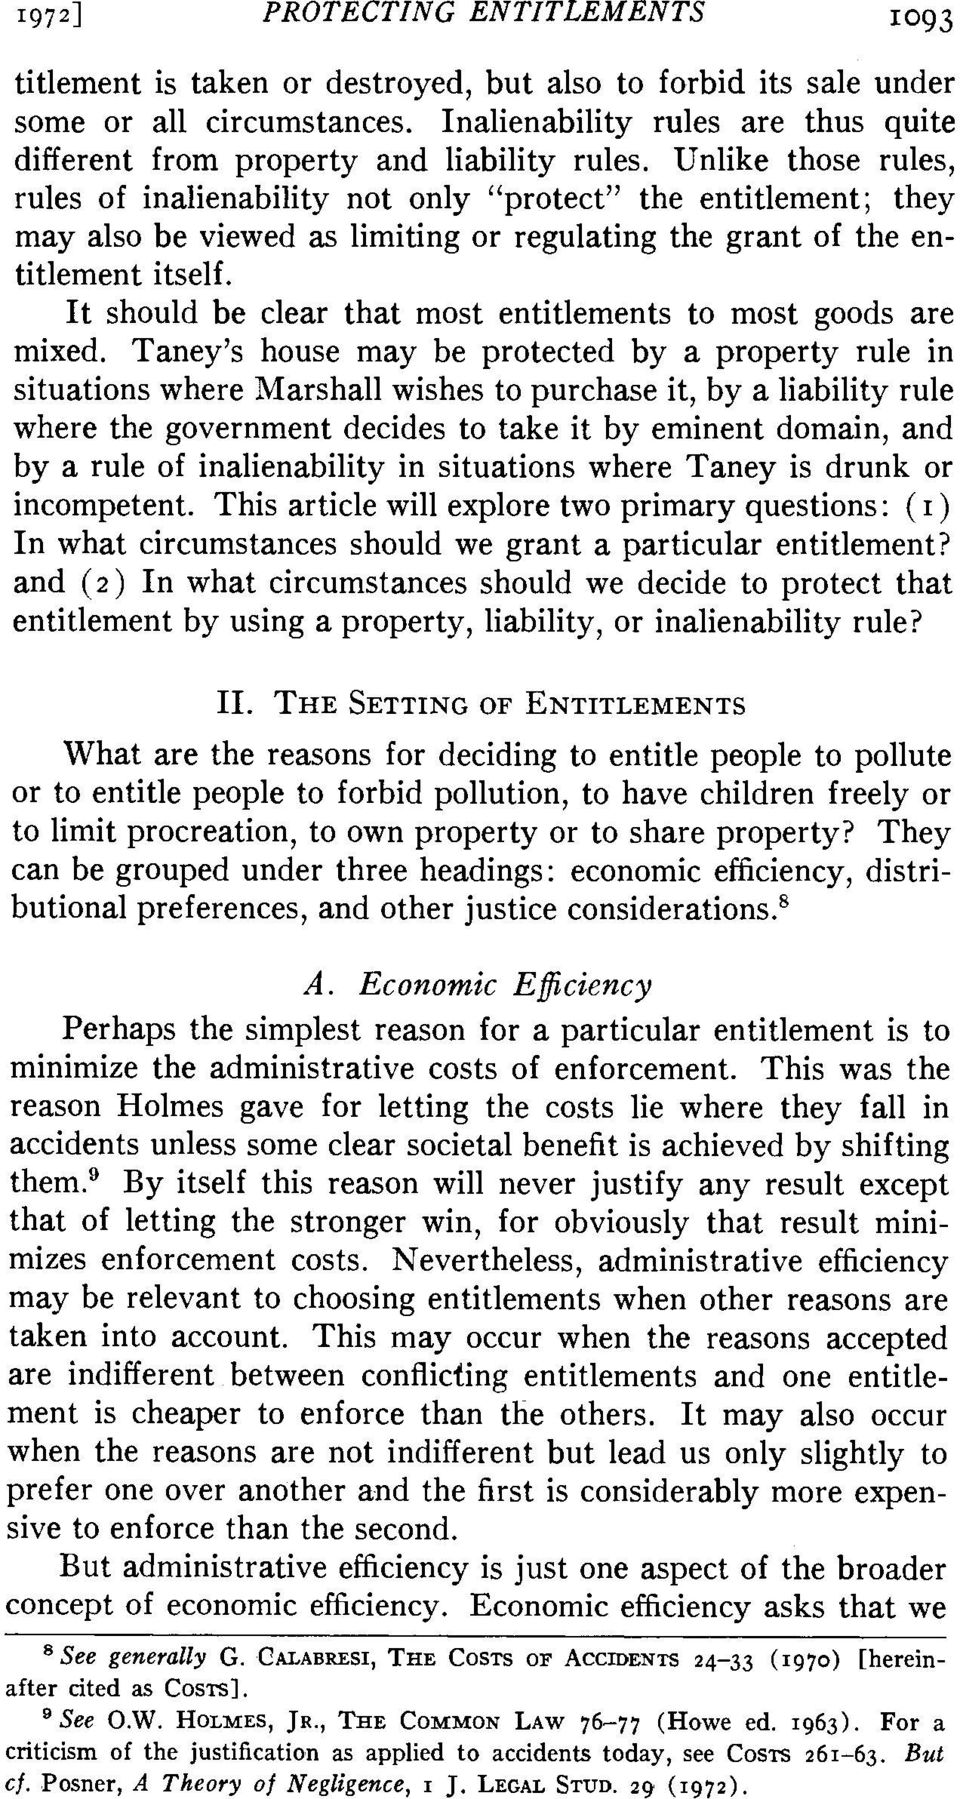 "Unlike those rules, rules of inalienability not only ""protect"" the entitlement; they may also be viewed as limiting or regulating the grant of the entitlement itself."